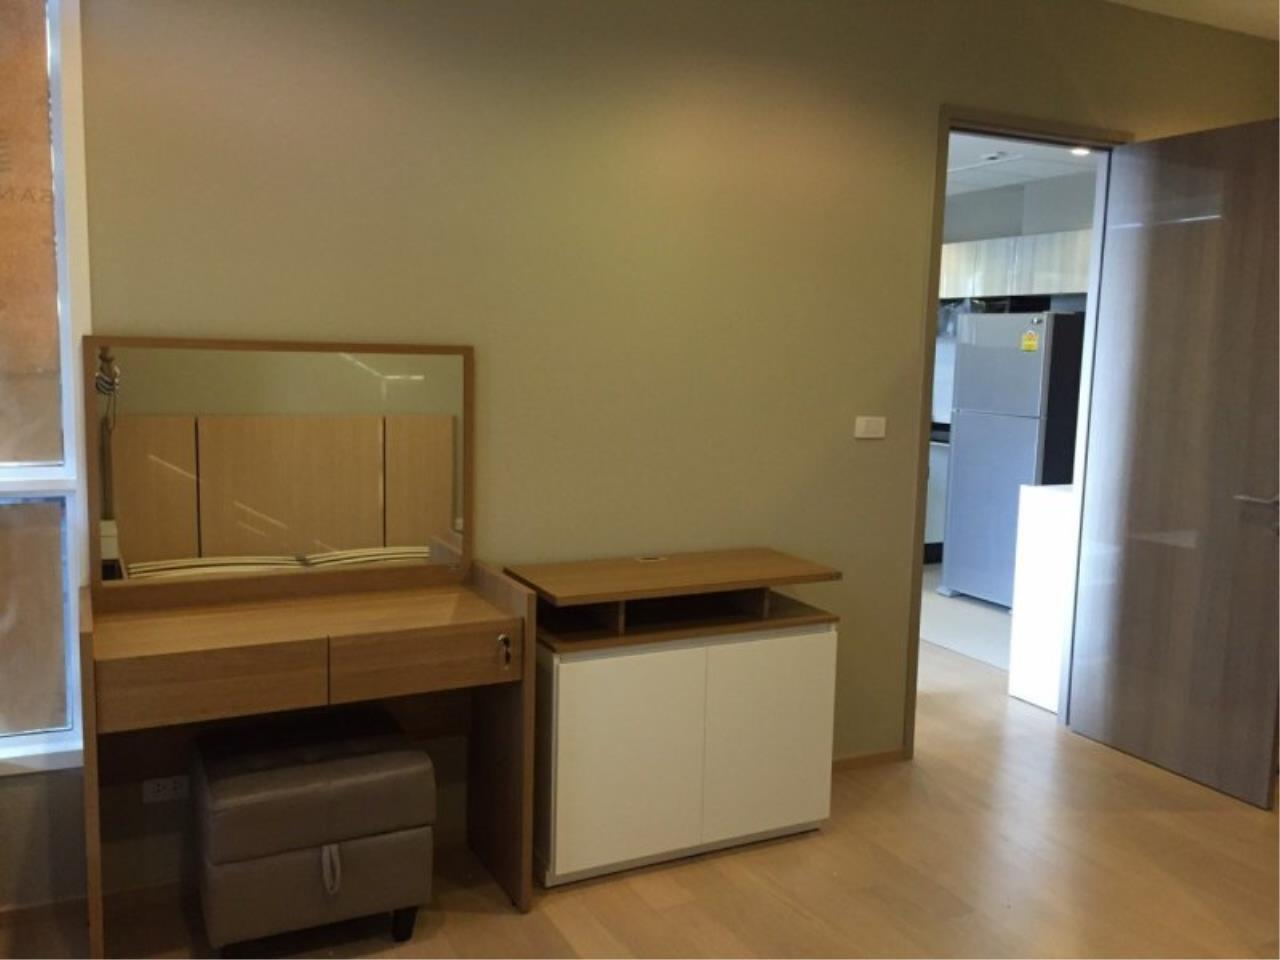 Piri Property Agency's Compact 1 Bedroom in the HQ Condo for rent on high floor 4